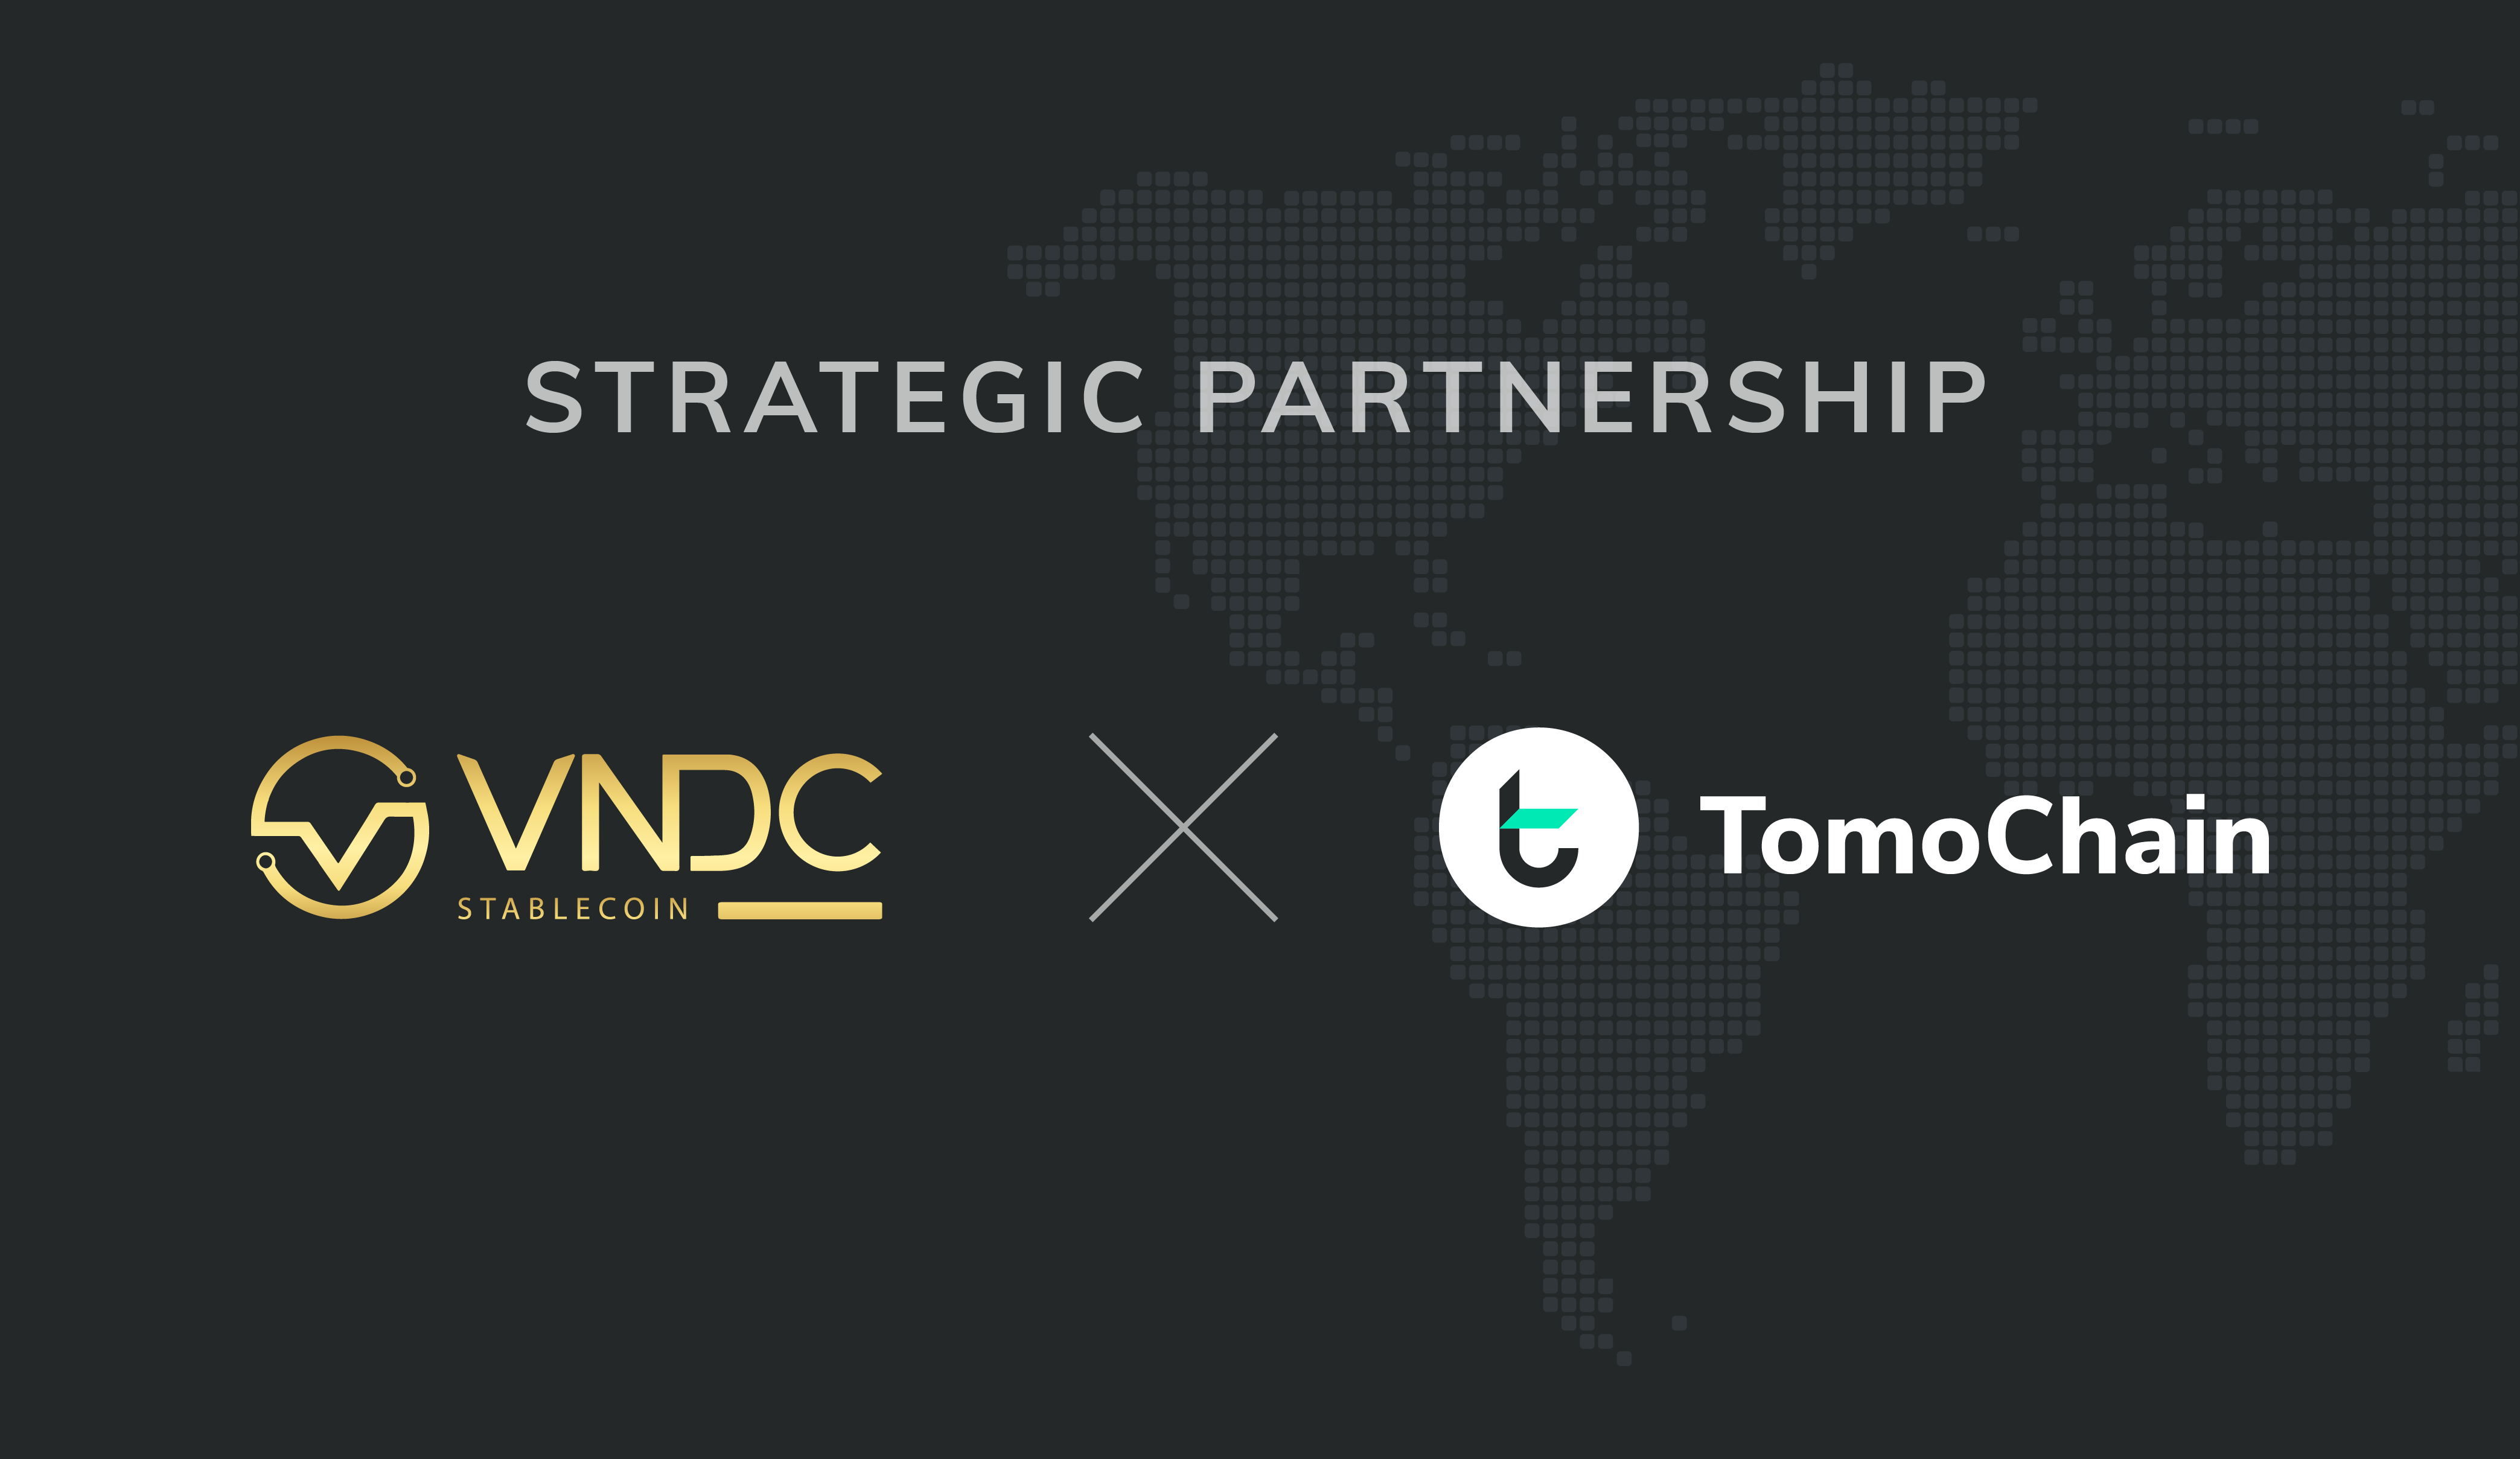 VNDC x TOMO: VNDC partners with TOMO to stimulate the DeFi economy